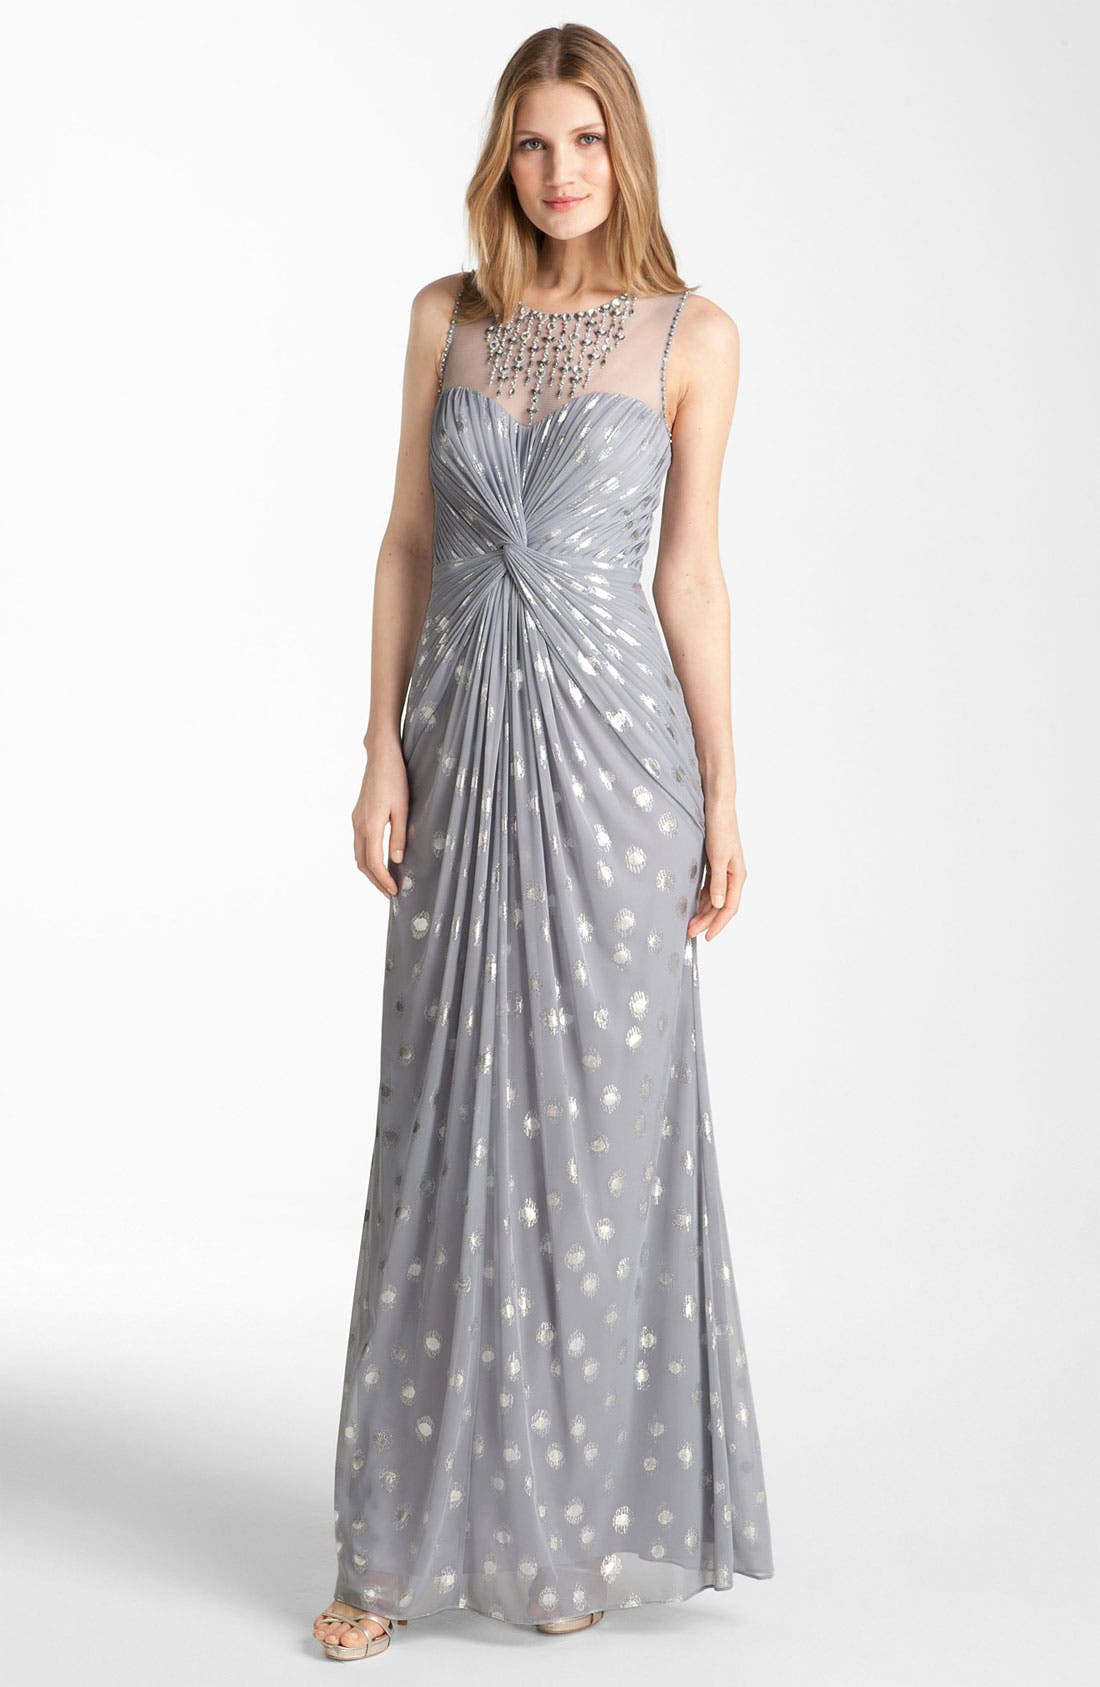 Alternate Image 1 Selected - Adrianna Papell Knot Front Metallic Mesh Gown